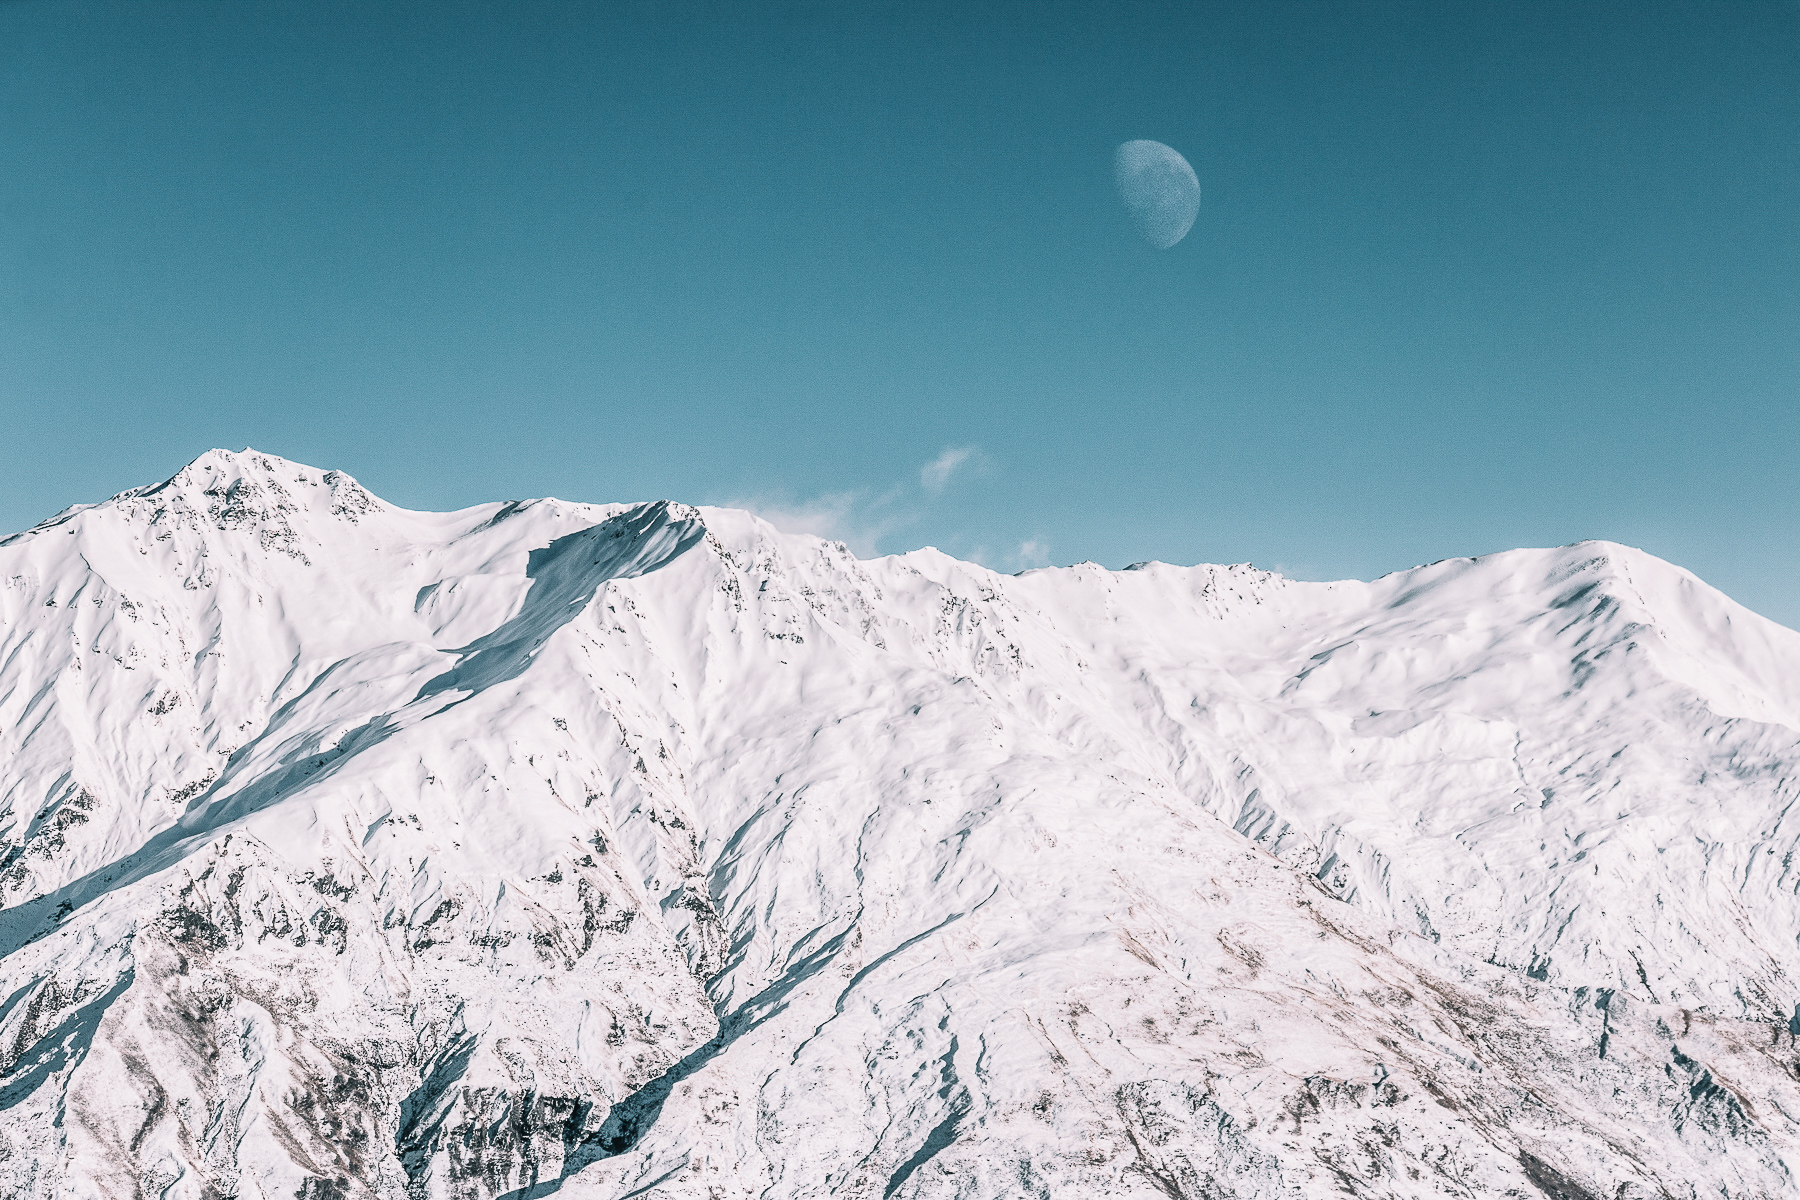 Mountains Blue Sky Moon.jpg